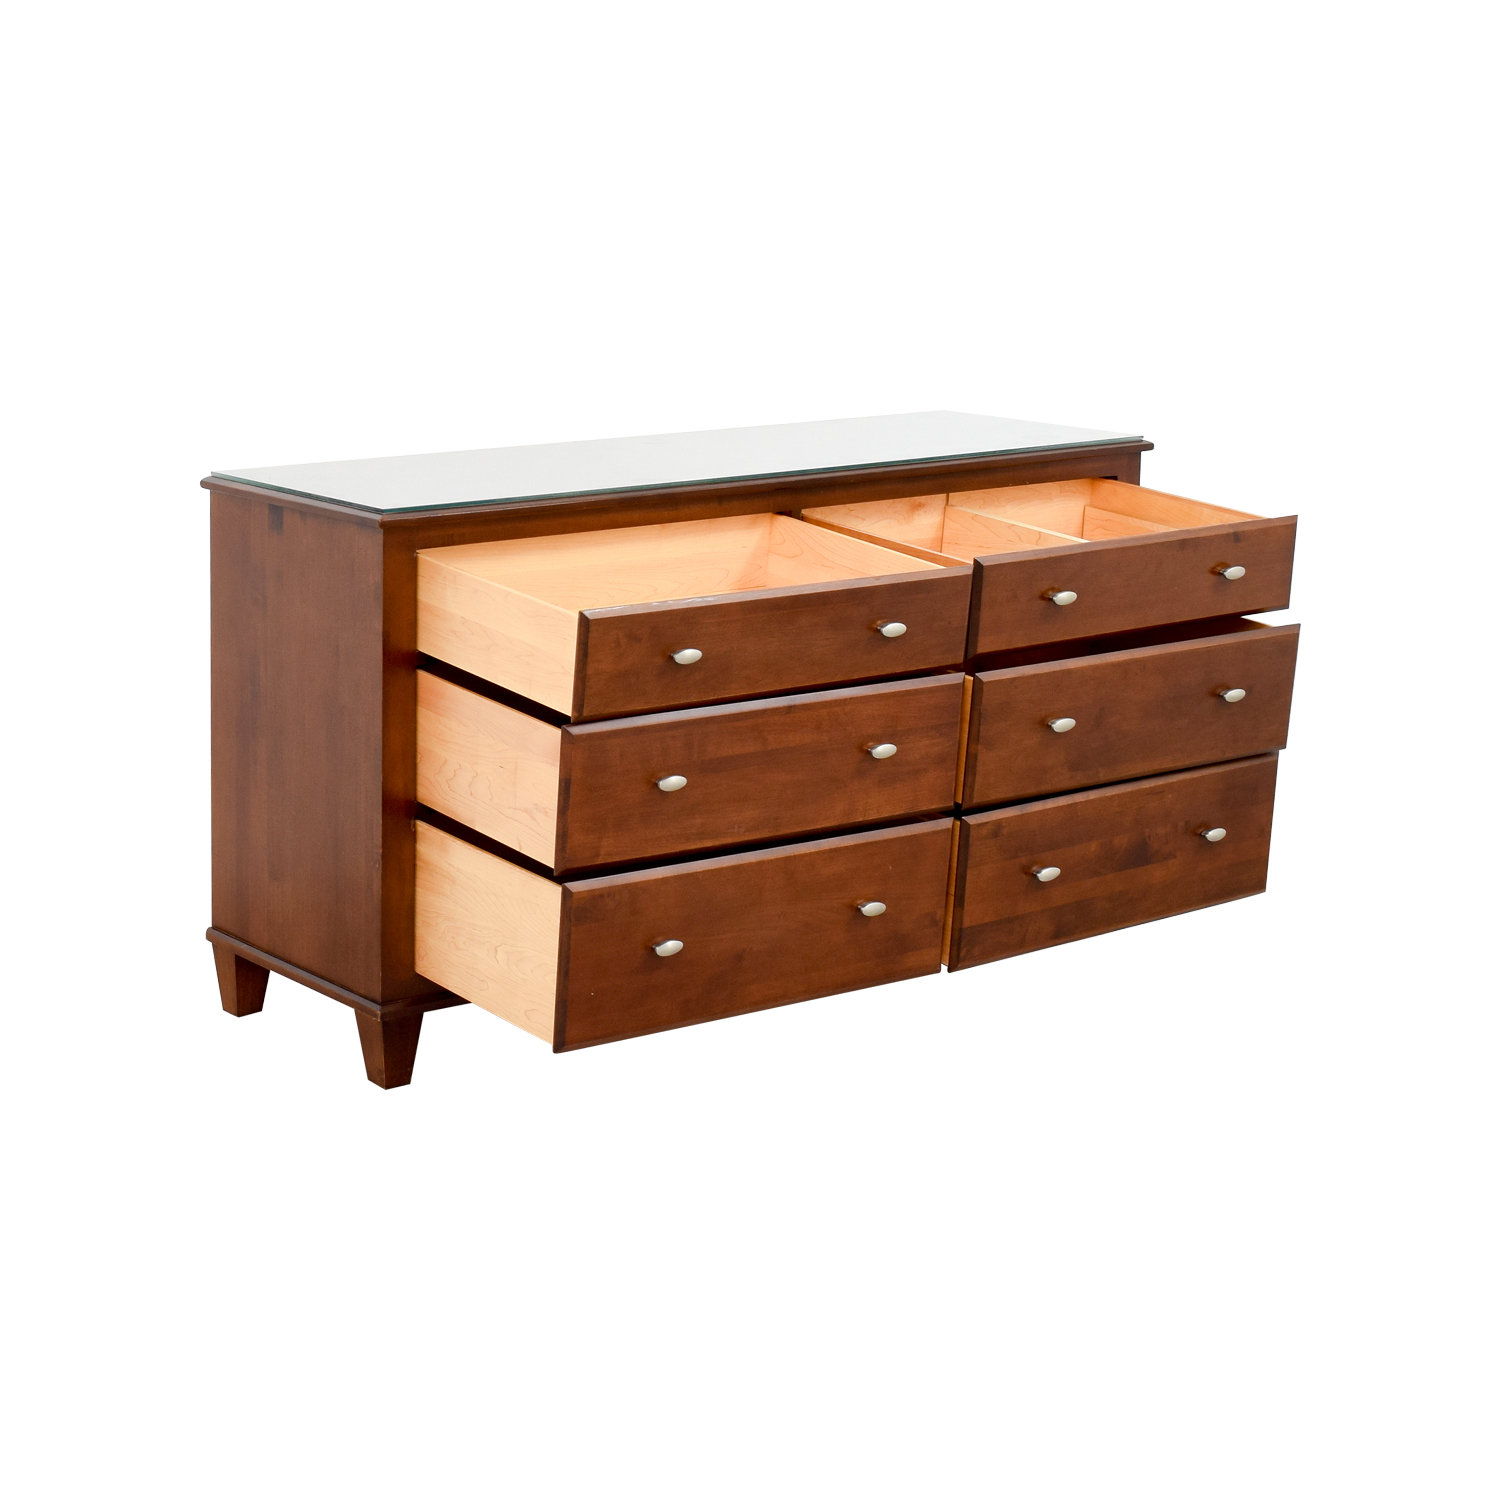 78 off ethan allen ethan allen six drawer double for Ethan allen furniture